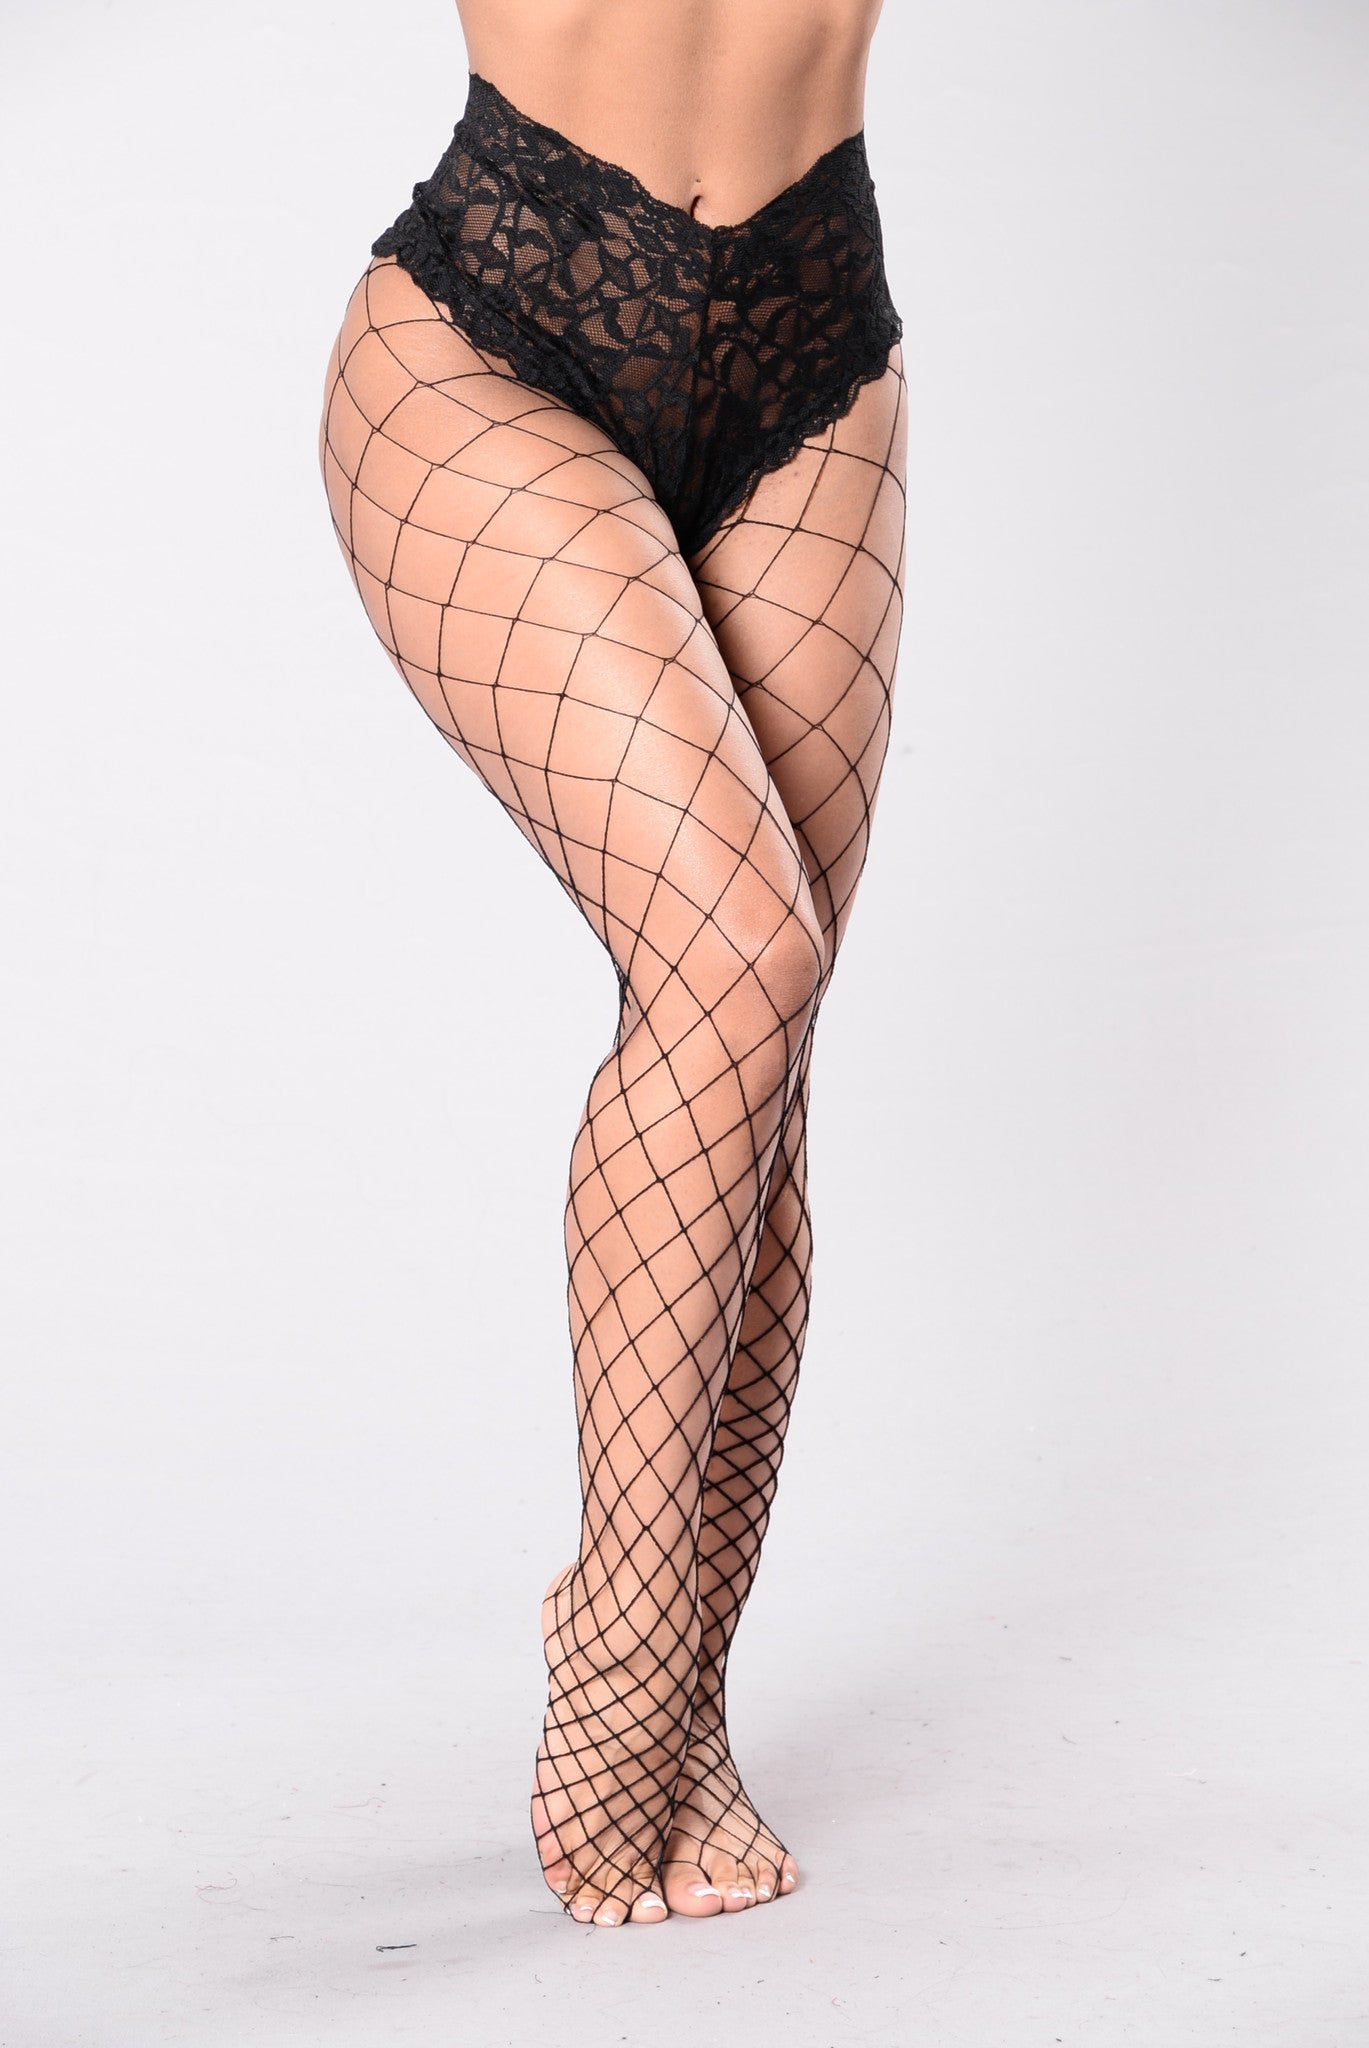 Women wearing fishnet pantyhose